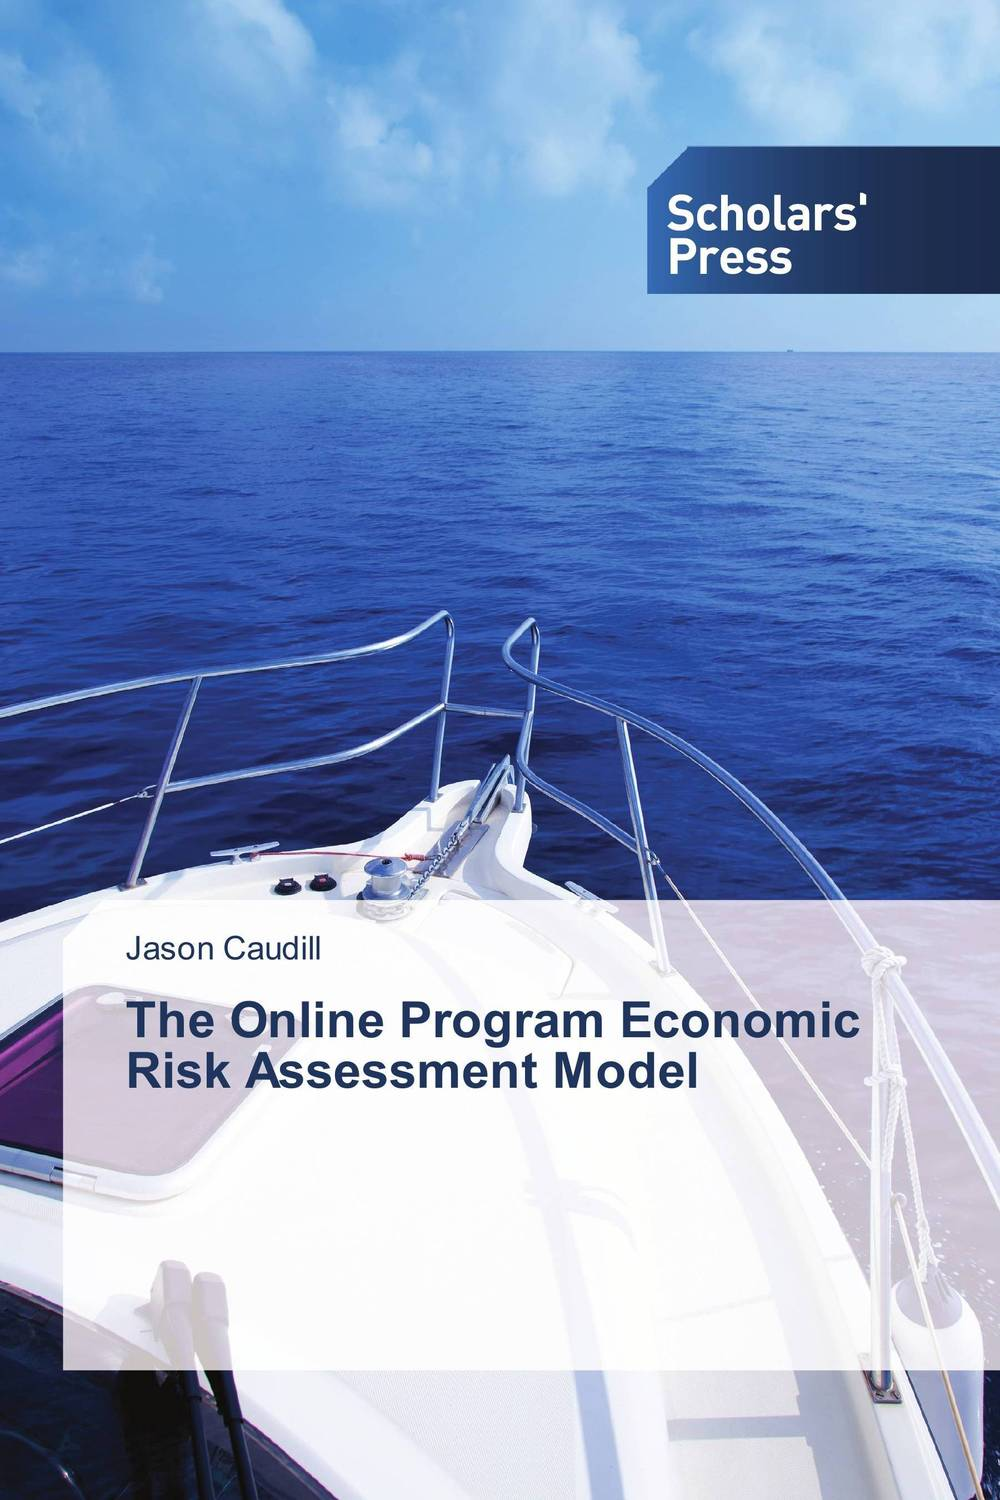 The Online Program Economic Risk Assessment Model